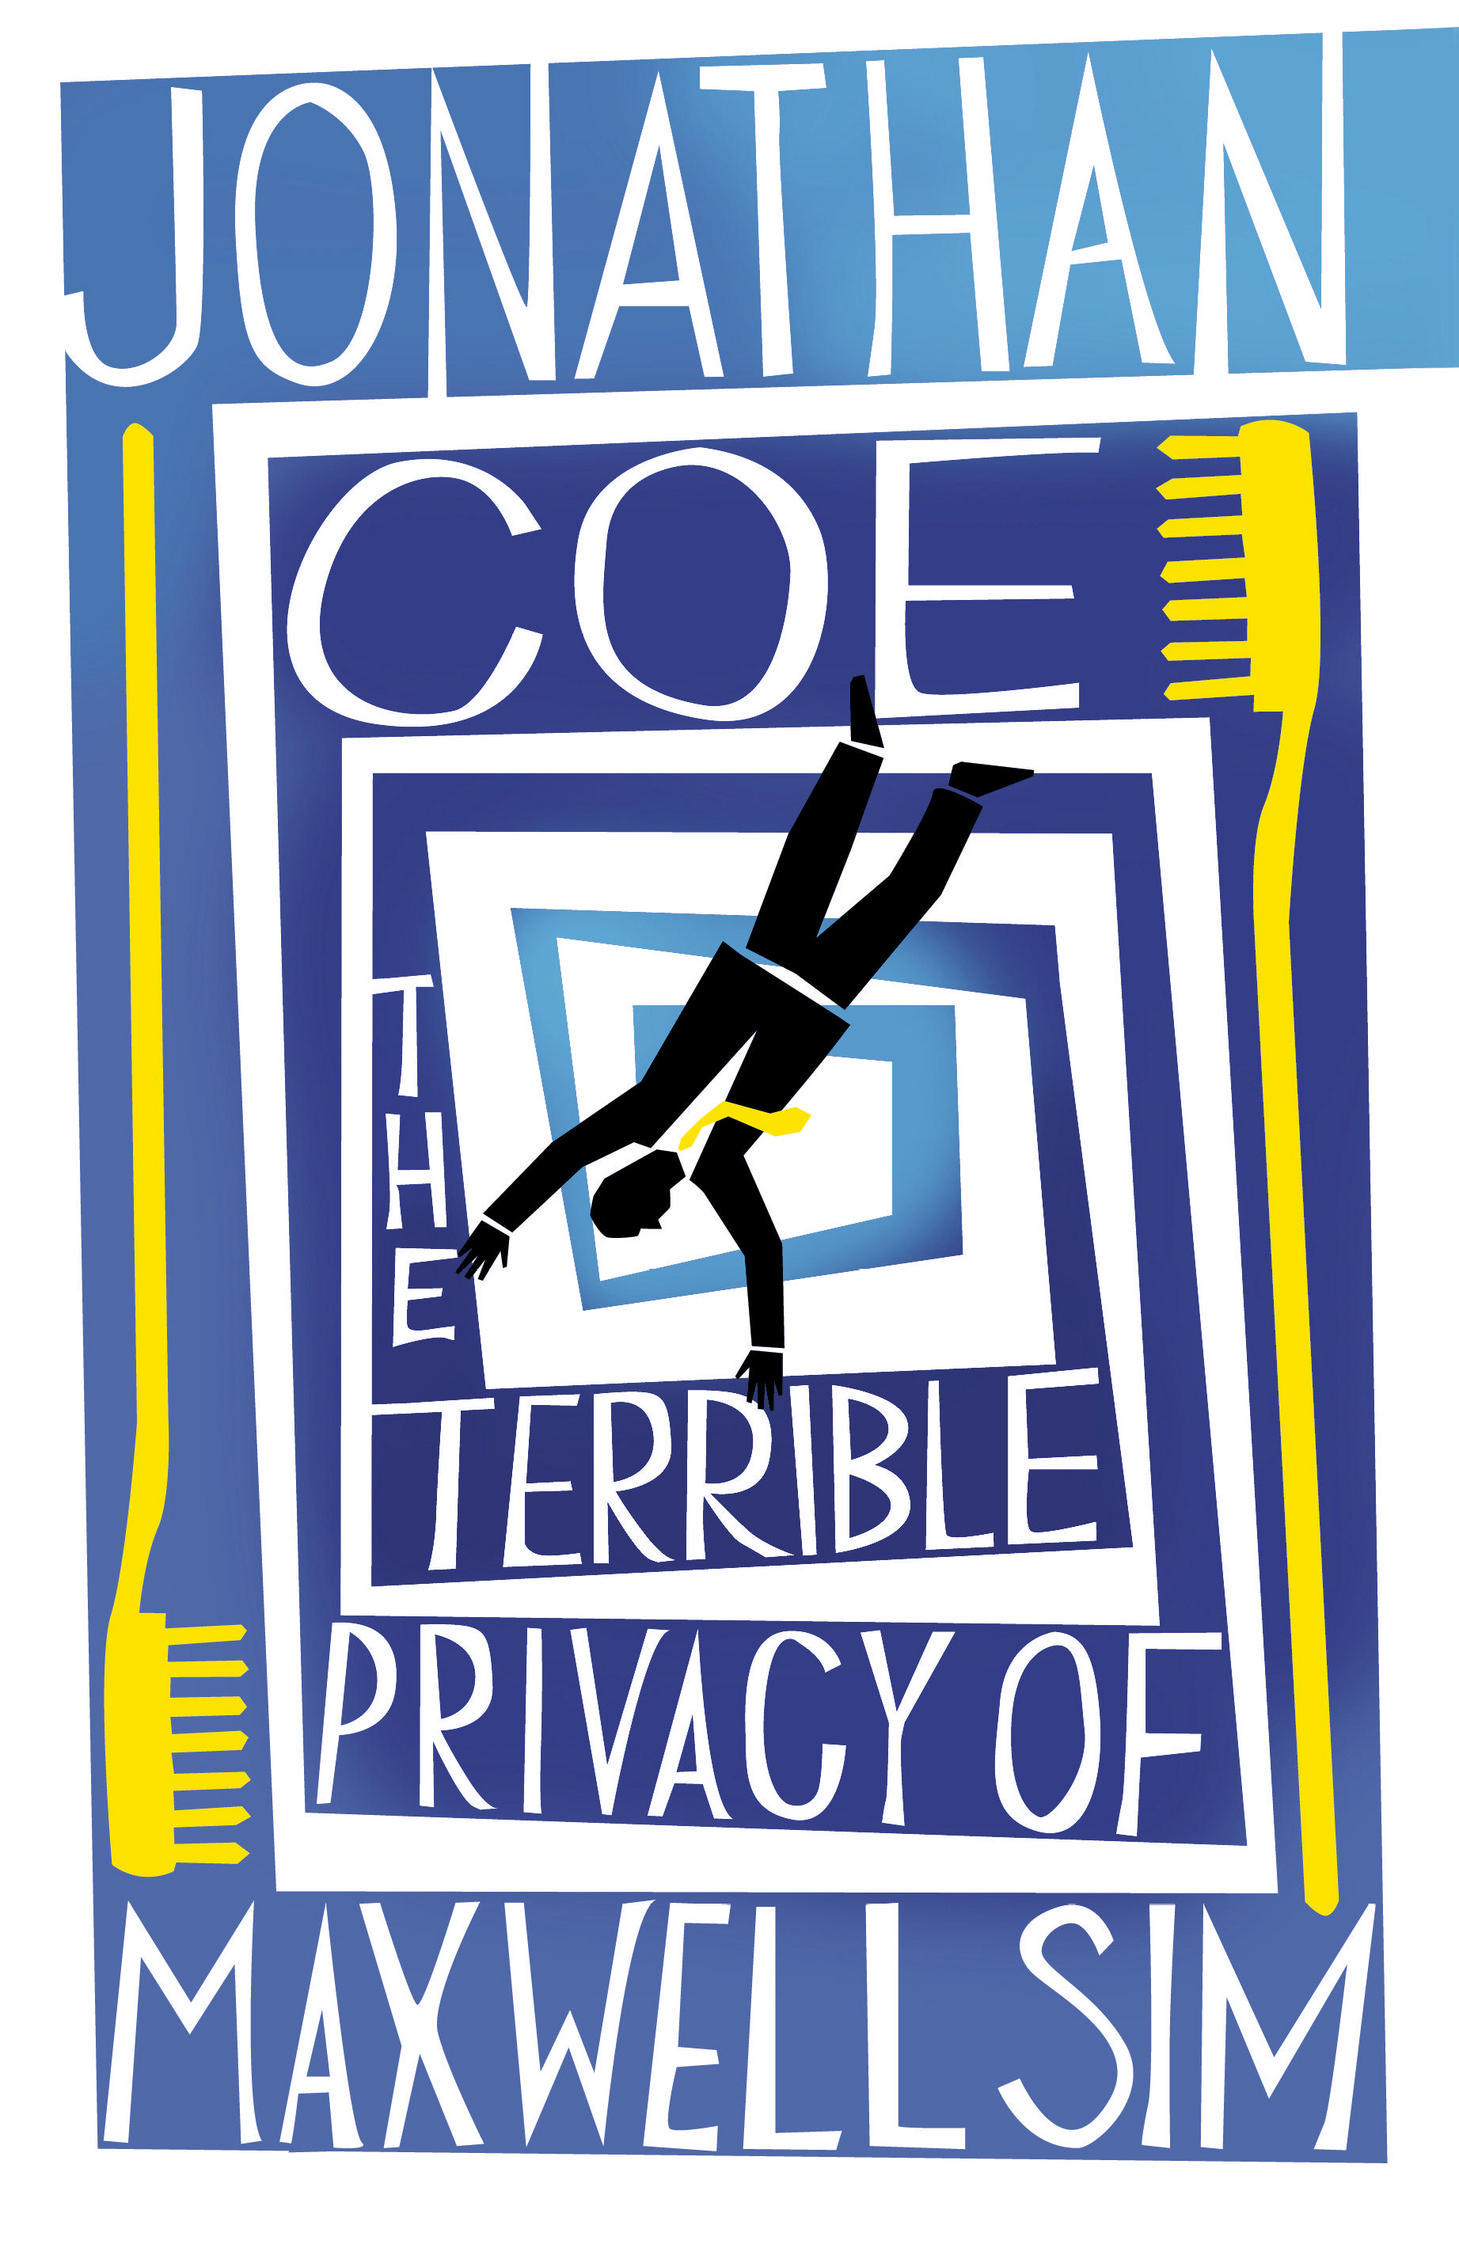 Book cover of Jonathan Coe's 'The terrible privacy of Maxwell Sim'